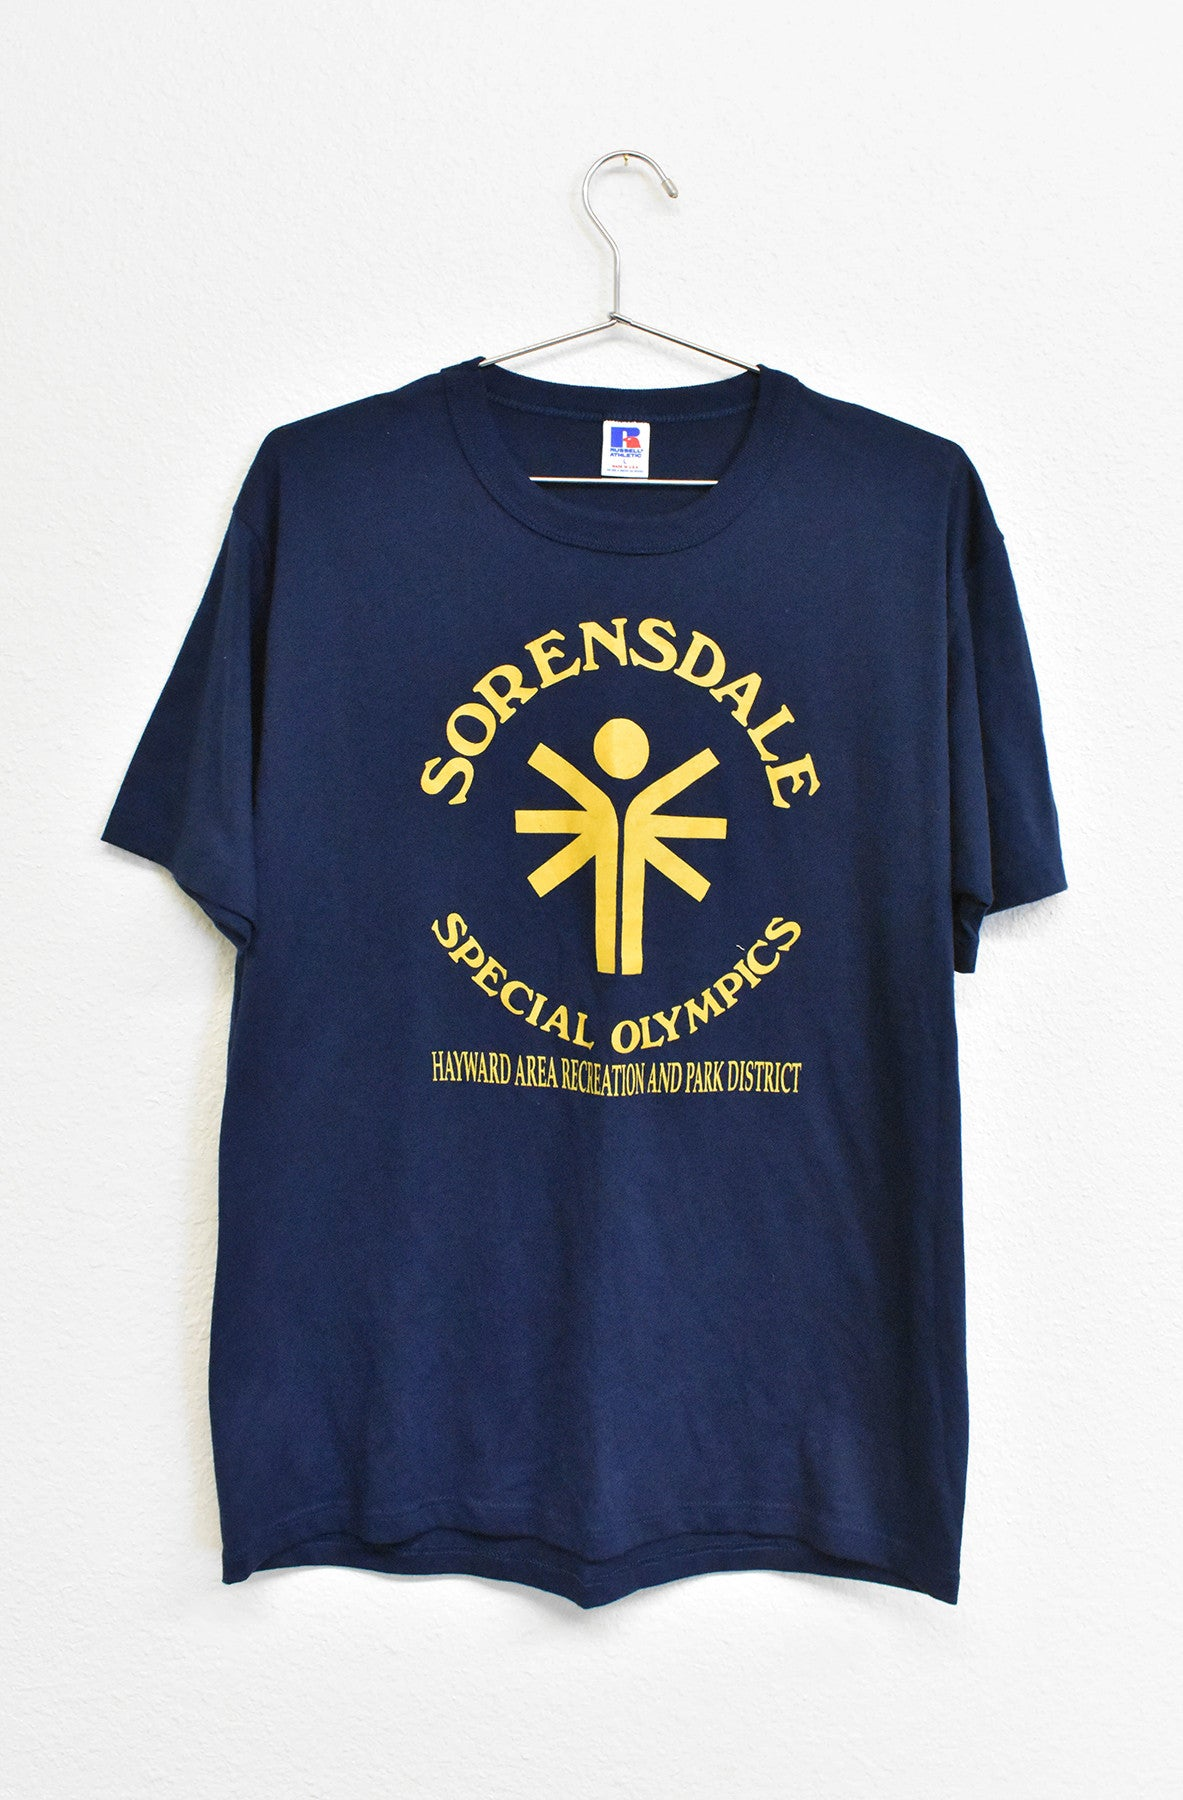 Sorensdale Special Olympics Tee